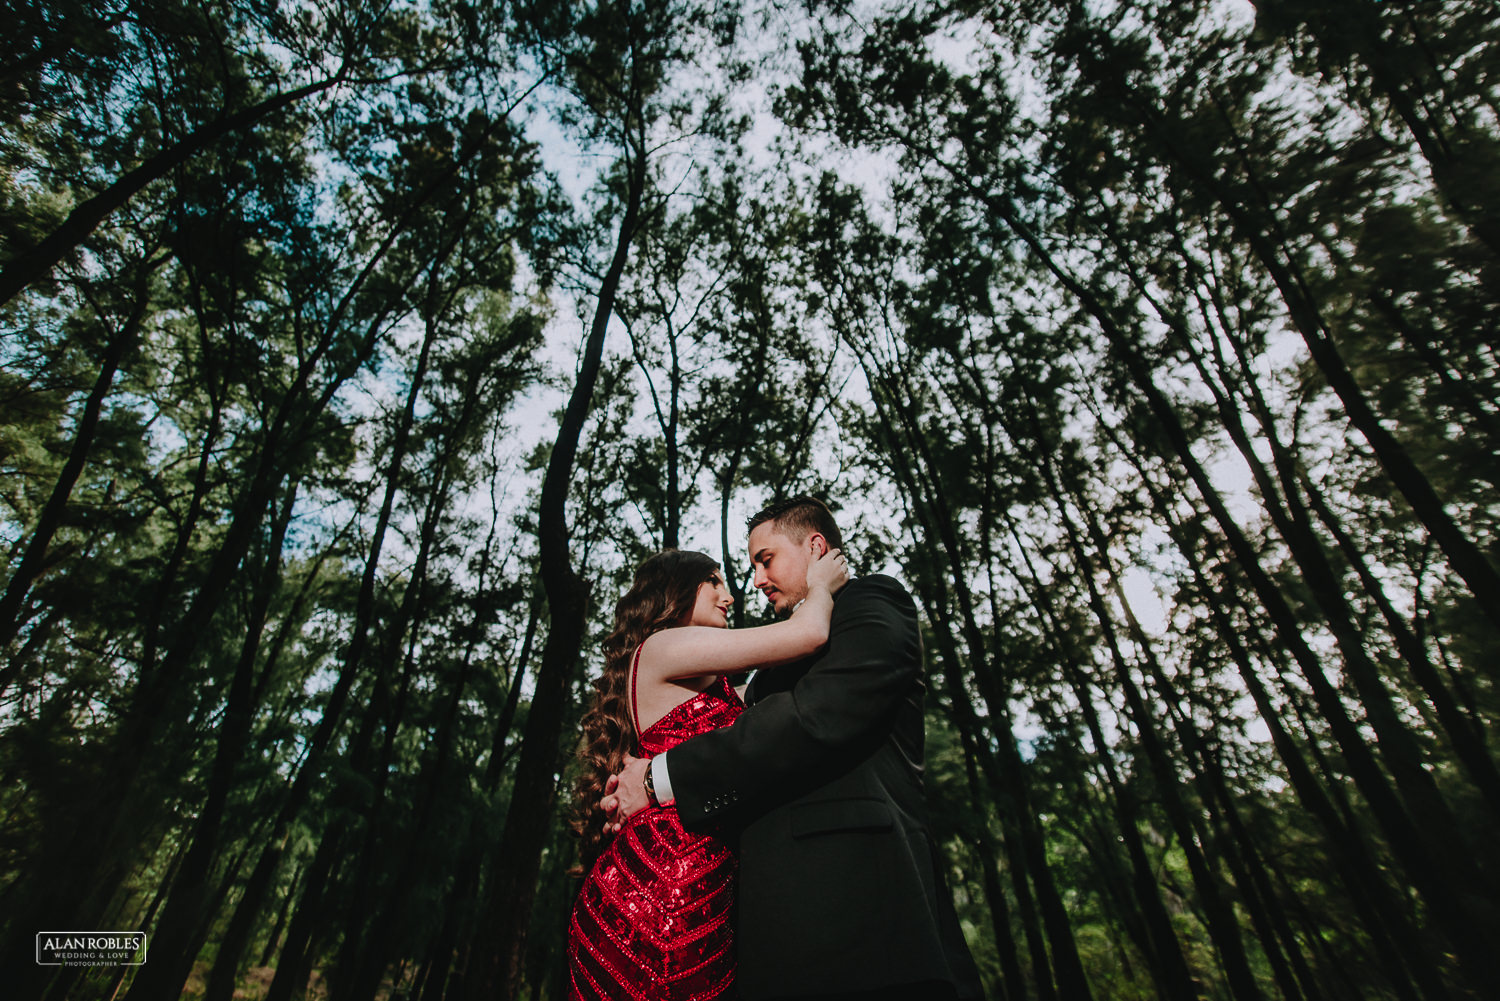 Bosque Colomos, sesion casual, novios, preboda, alan robles, love is the big reason, pareja, arboles